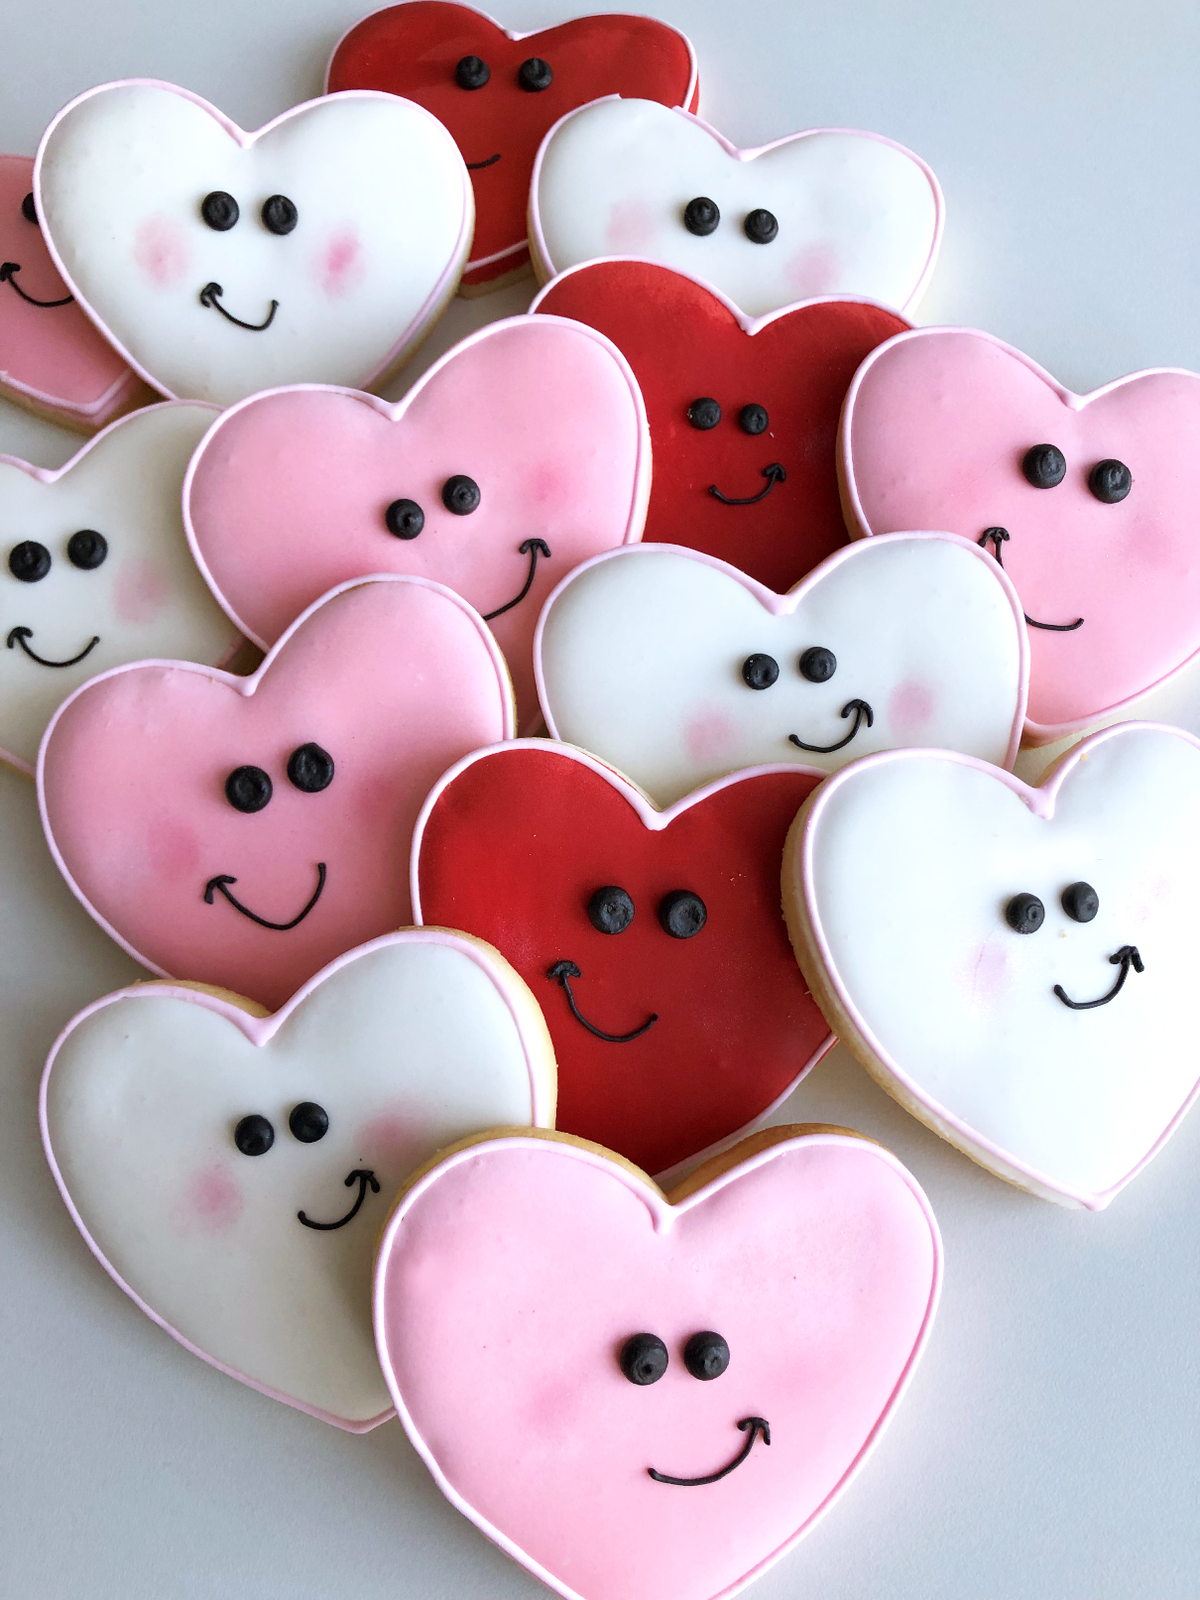 Whippt Desserts - Valentines Smiley Face Cookies 2019